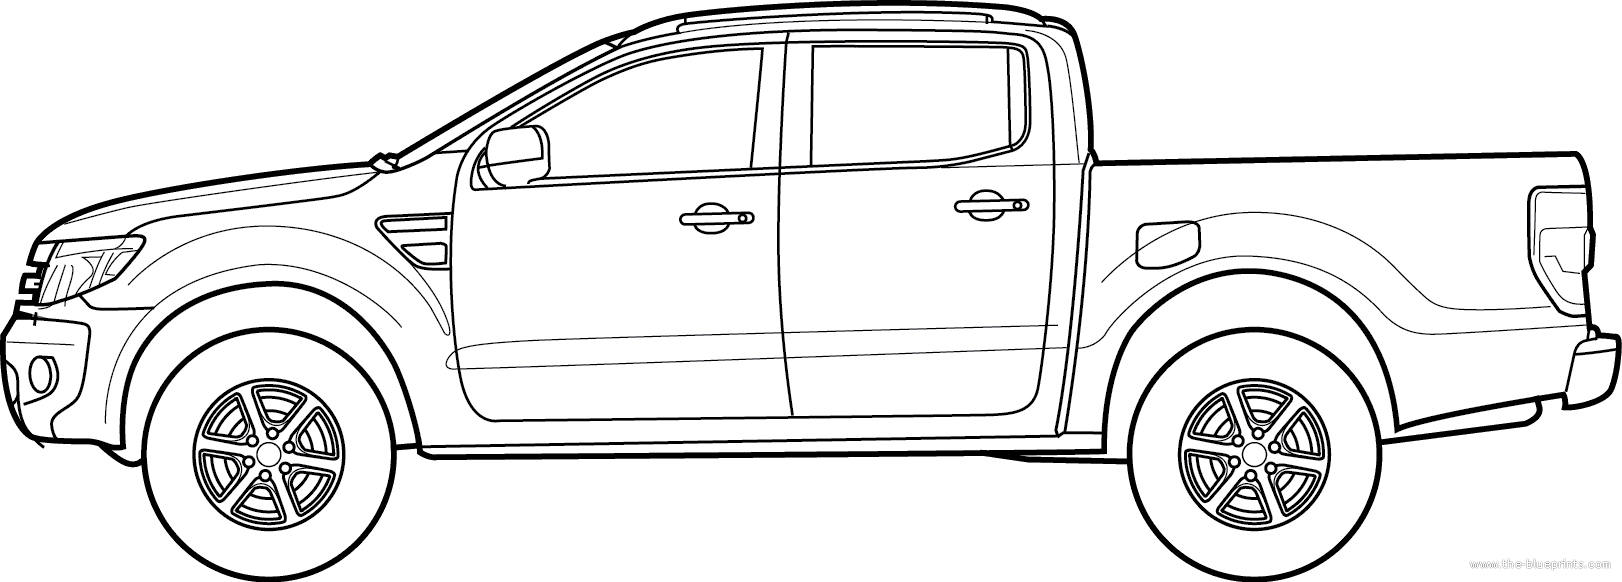 Car Printables in addition Drag Pencil Drawings PsloPvLknQj 7CowL9EeJgQQhLvNAvIiL 7CyngSFv F54w as well Clipart Car Icon likewise How To Draw A Hot Rod 17587 besides What's My Line. on ford car sketch